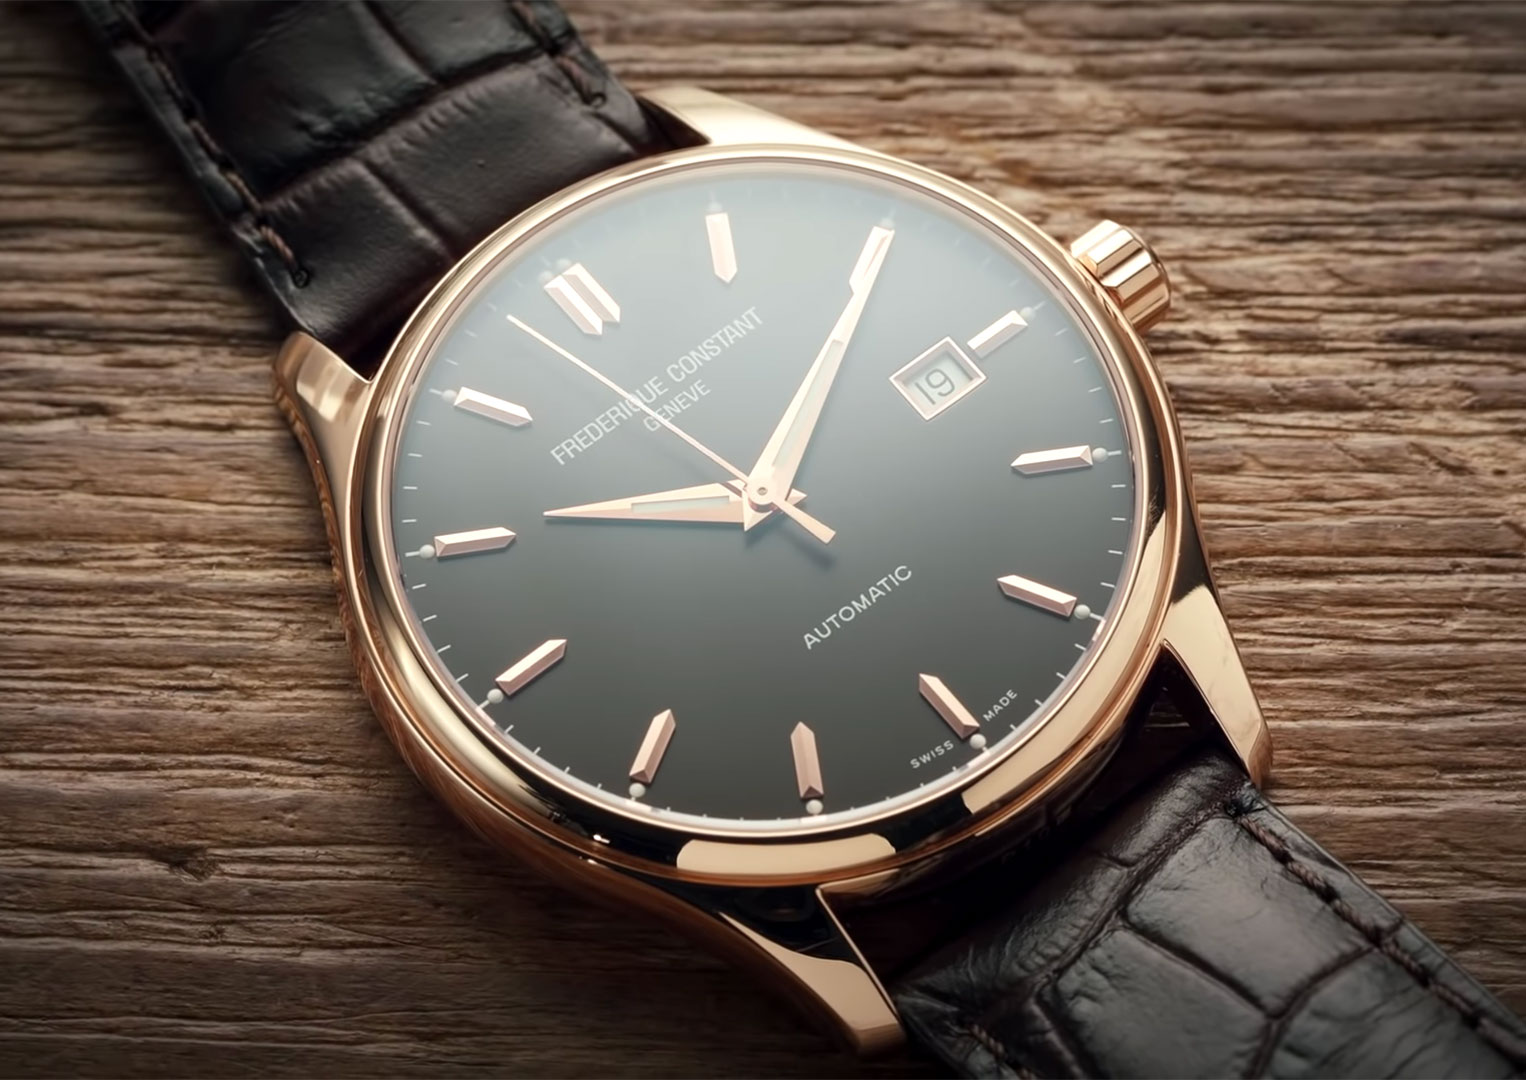 Frédérique Constant, as a luxury watch company is fairly new. It was established in 1988